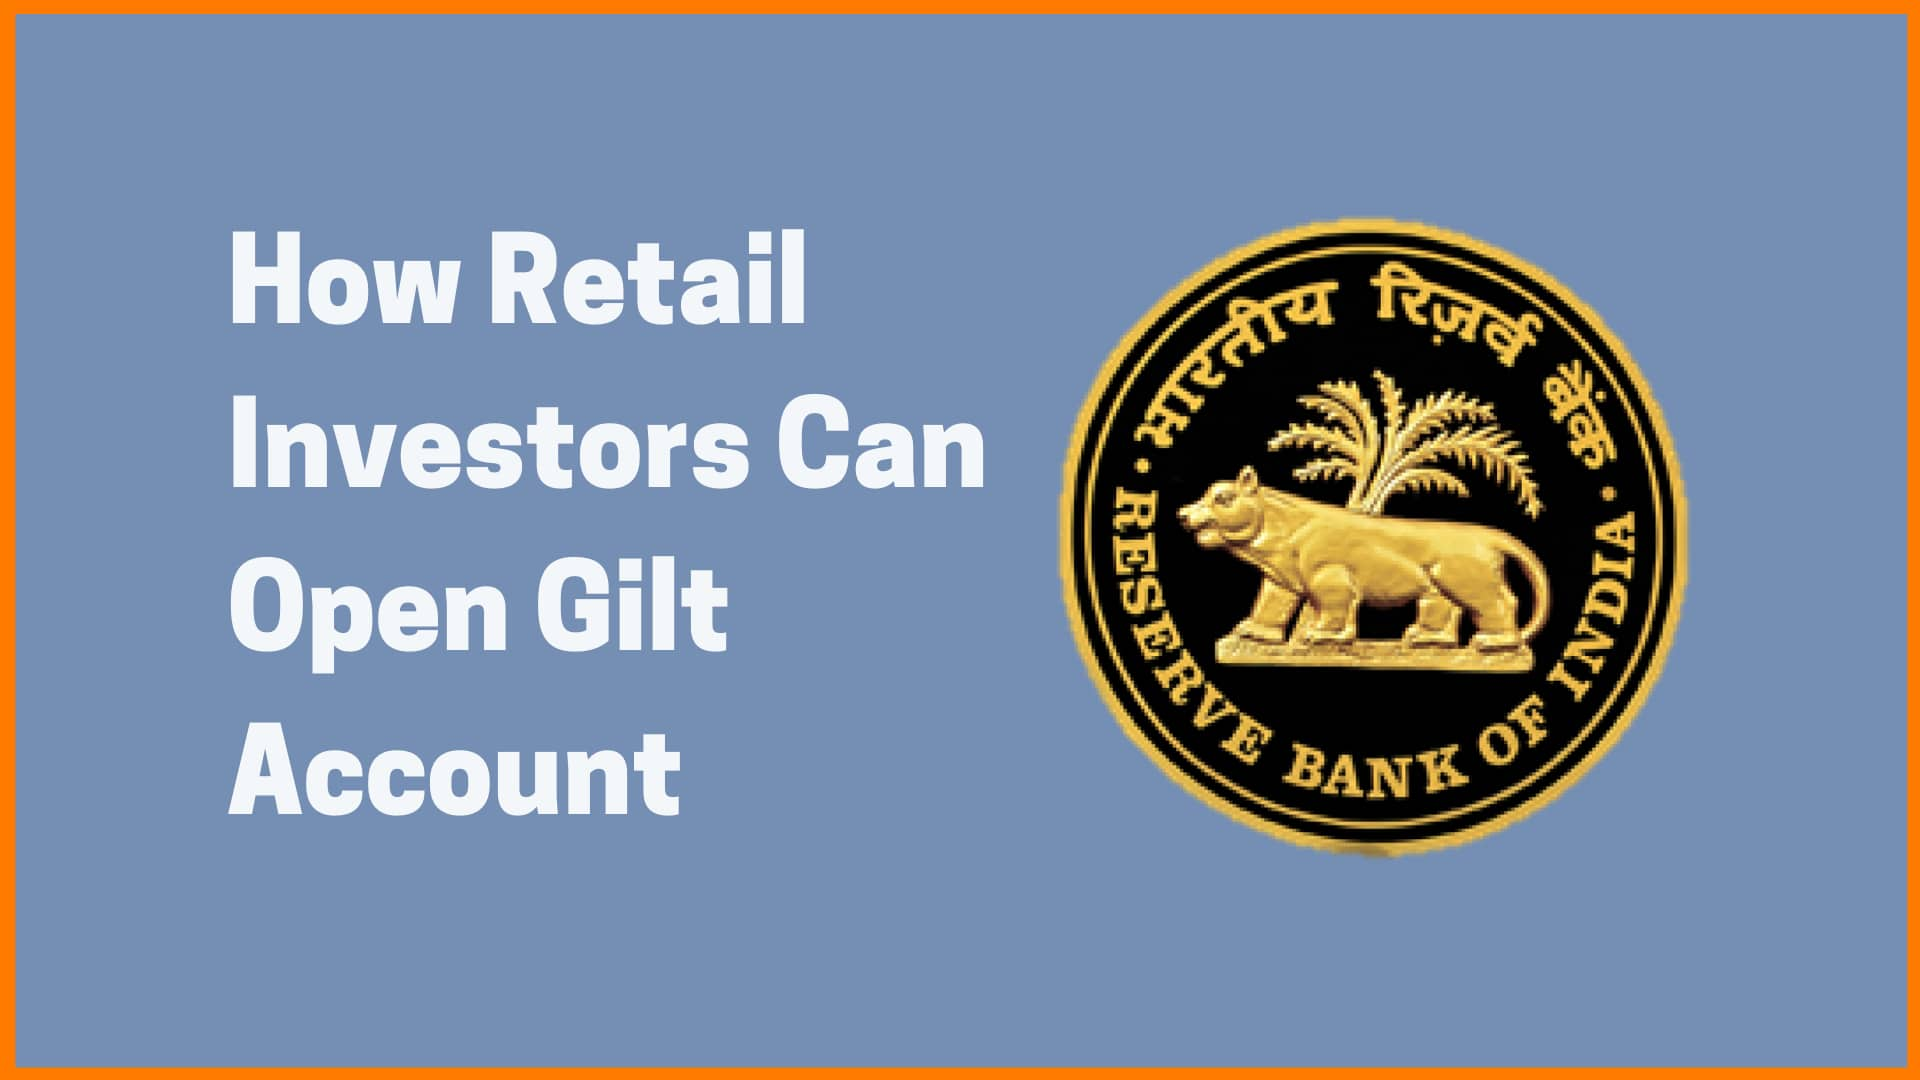 How can Retail Investors open a Gilt Account